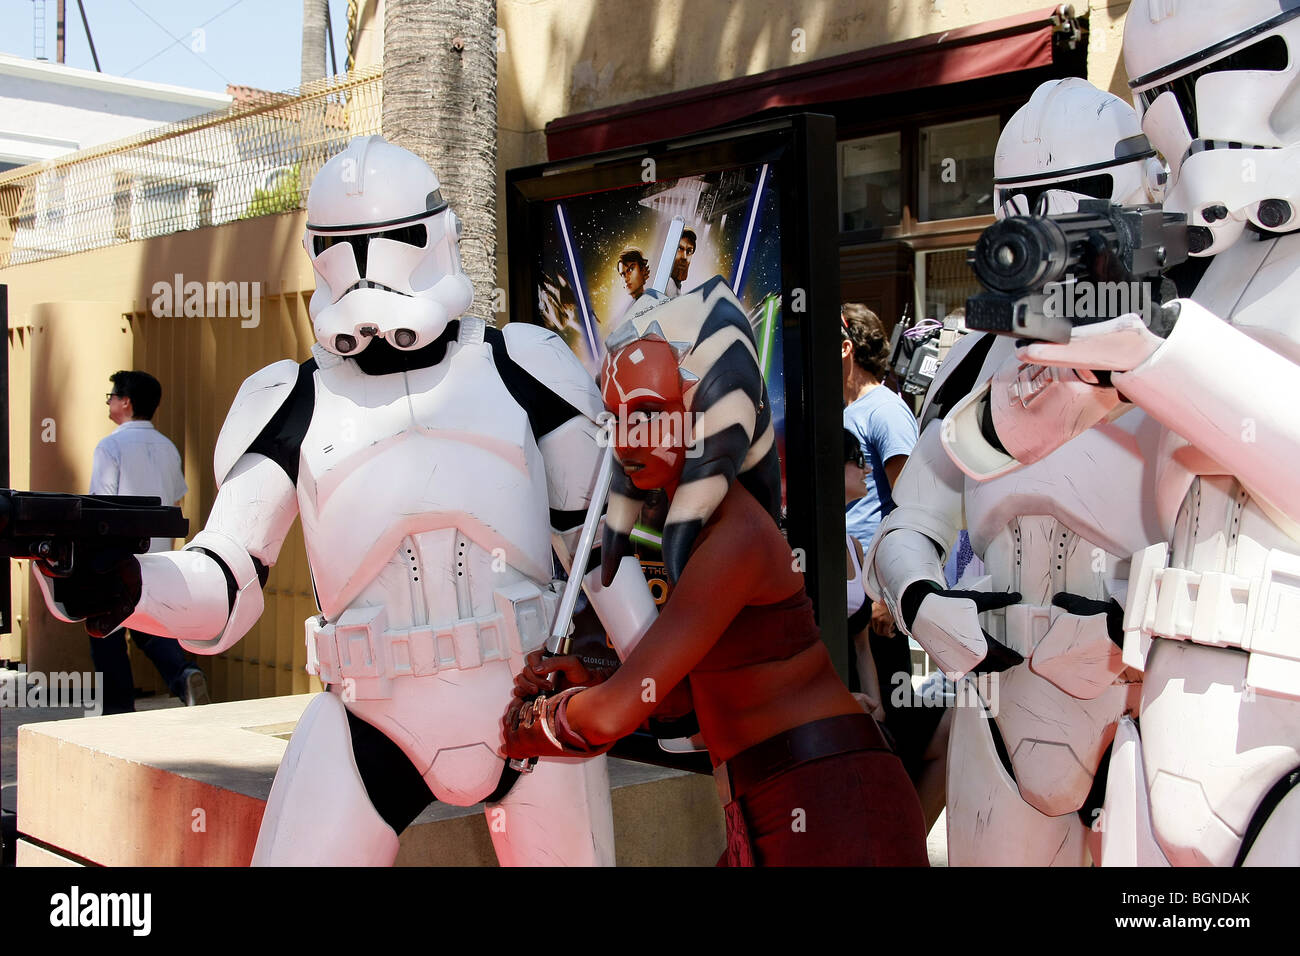 AHSOKA TANO STORMTROPPERS STAR WARS: THE CLONE WARS U.S. PREMIERE EGYPTIAN THEATRE  HOLLYWOOD LOS ANGELES USA 10 - Stock Image